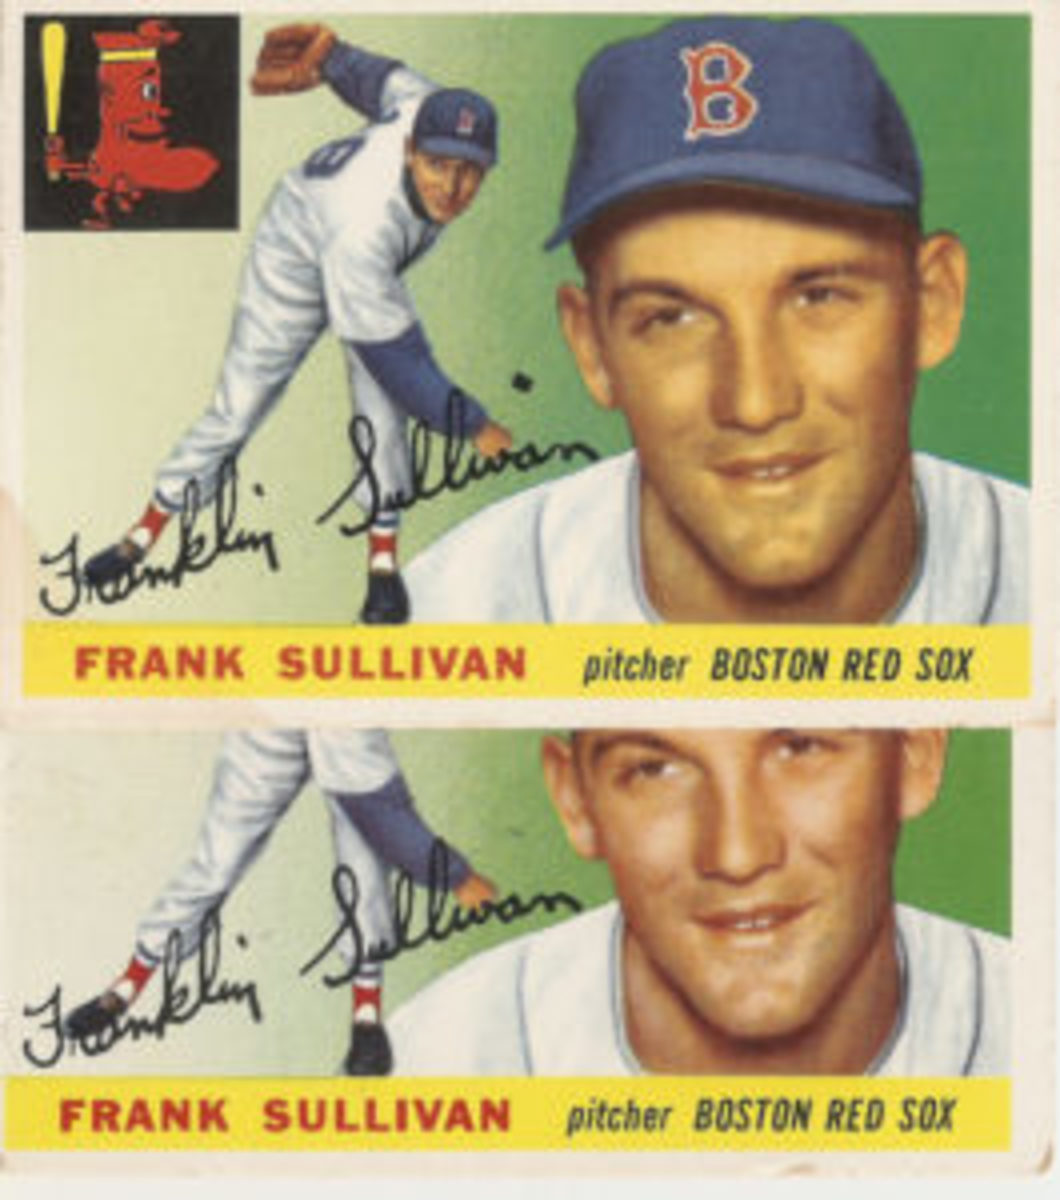 "Card No. 106 of Frank Sullivan comes with no dot, a heavy dot over the ""i"" or several versions of dots in between."